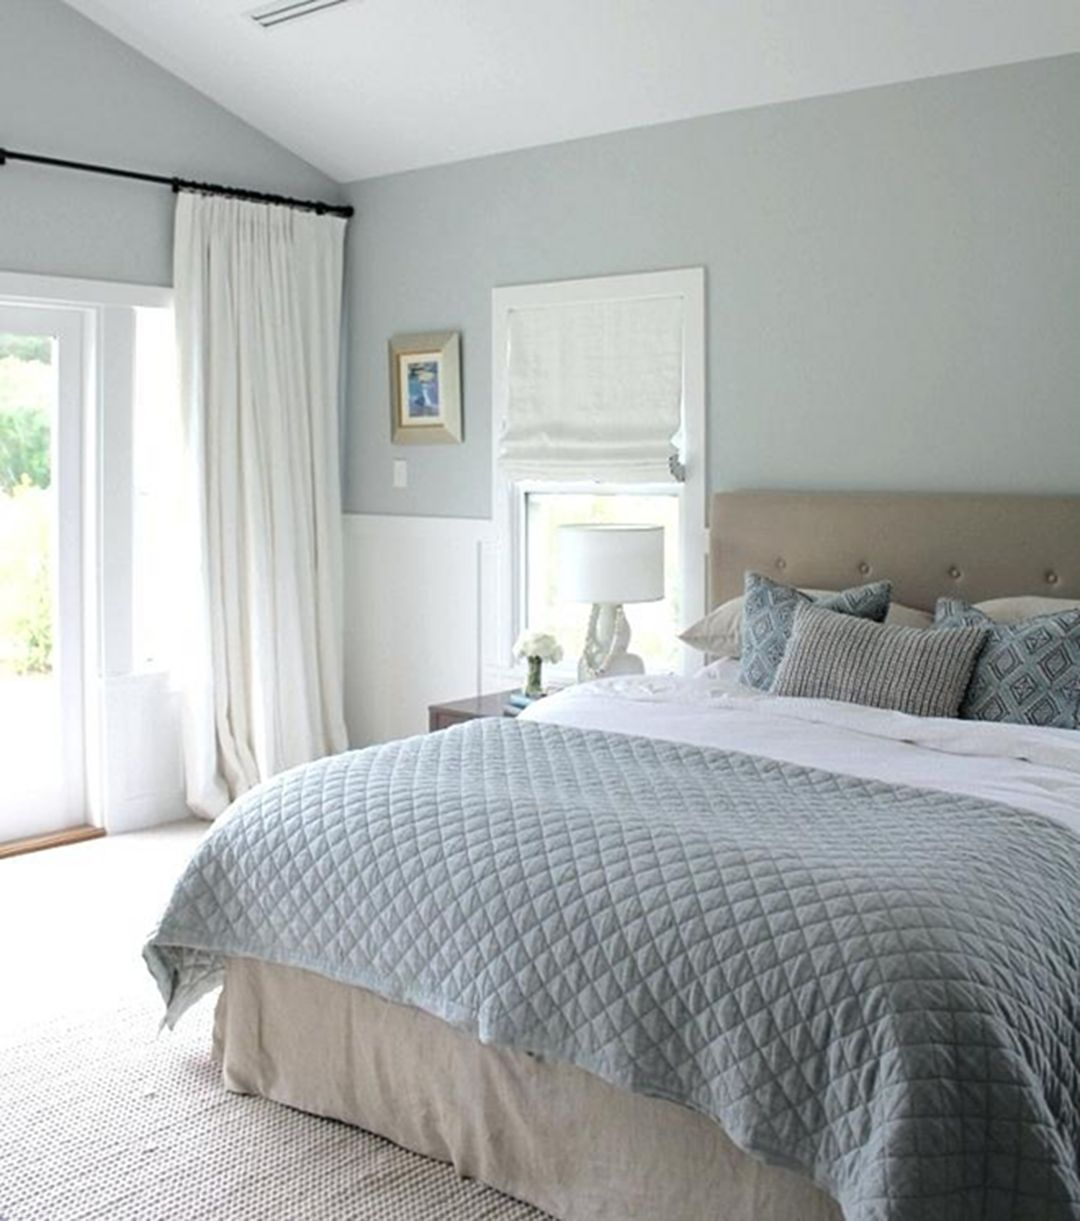 16 Relaxing Bedroom Designs For Your Comfort: 15+ Best And Wonderful Bedroom Soothing Colors To Sleep